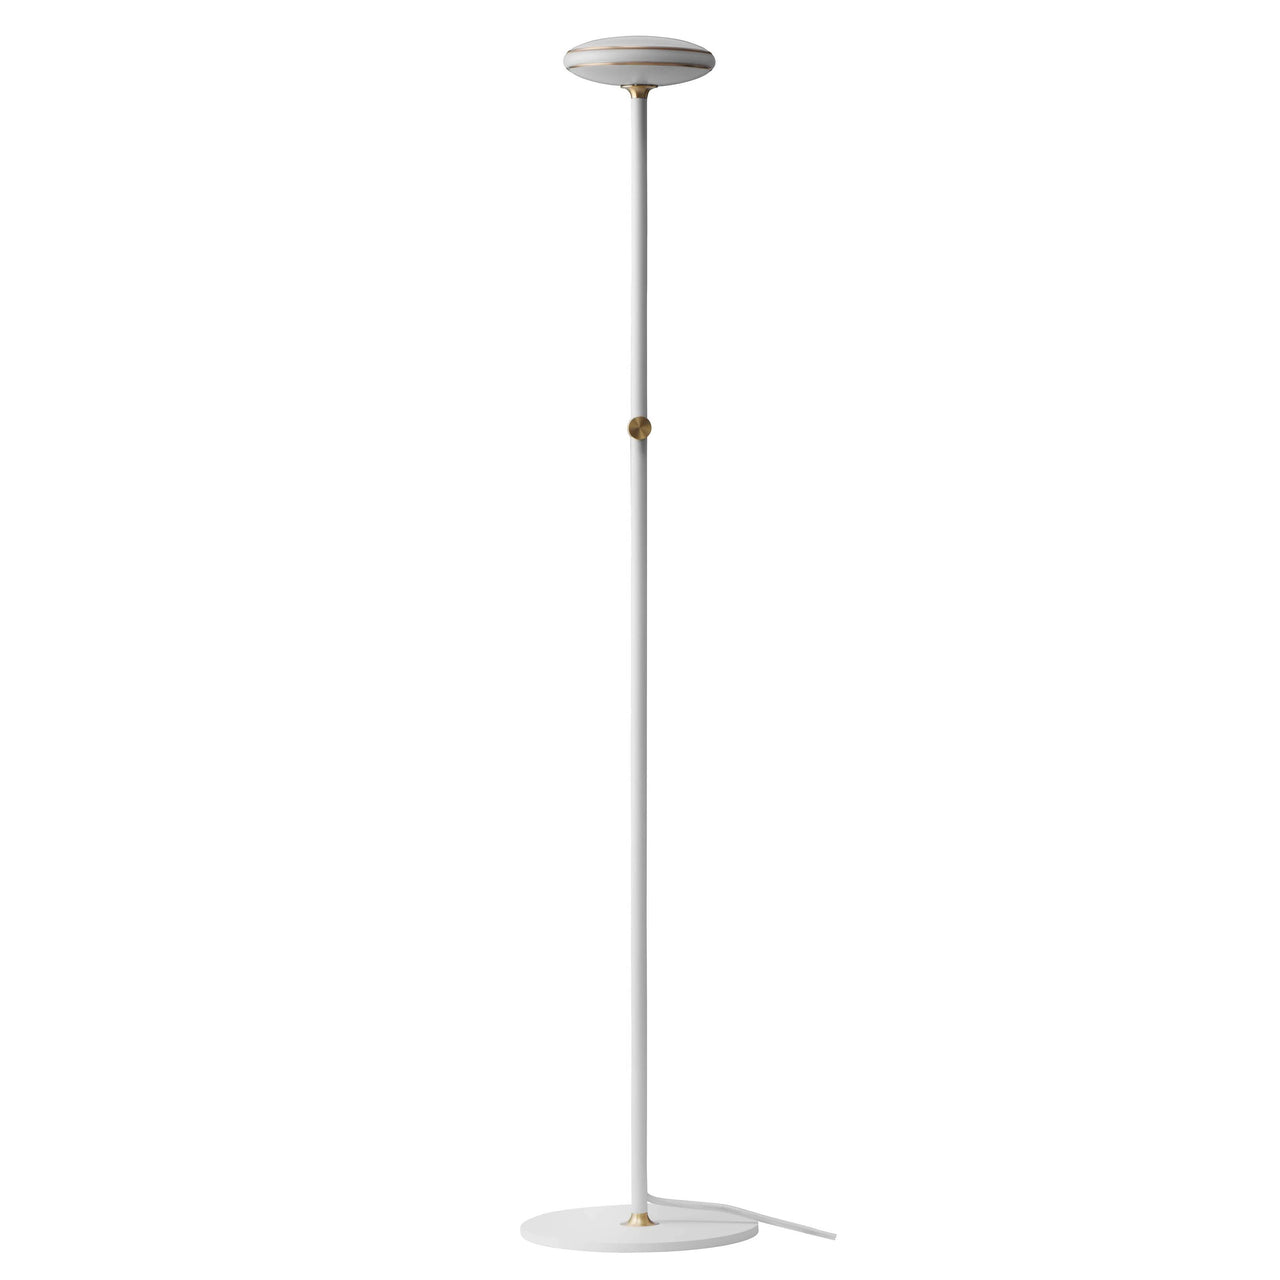 ØS1 Floor Lamp: Brass + White + Without Node